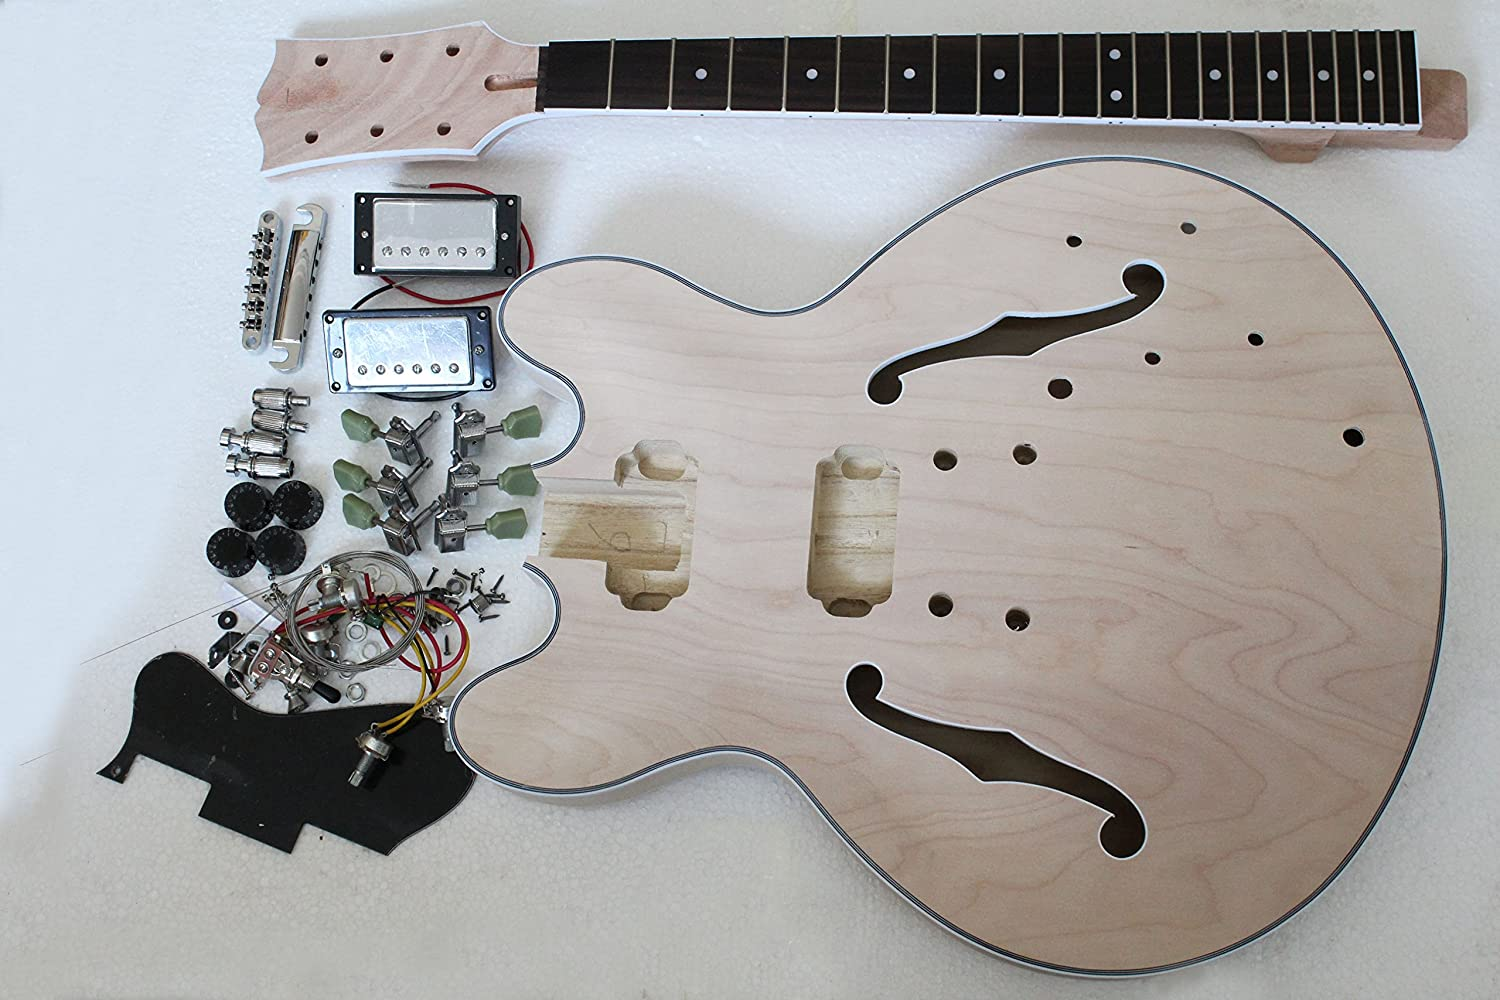 Project electric semi-hollow jazz guitar kit with all parts